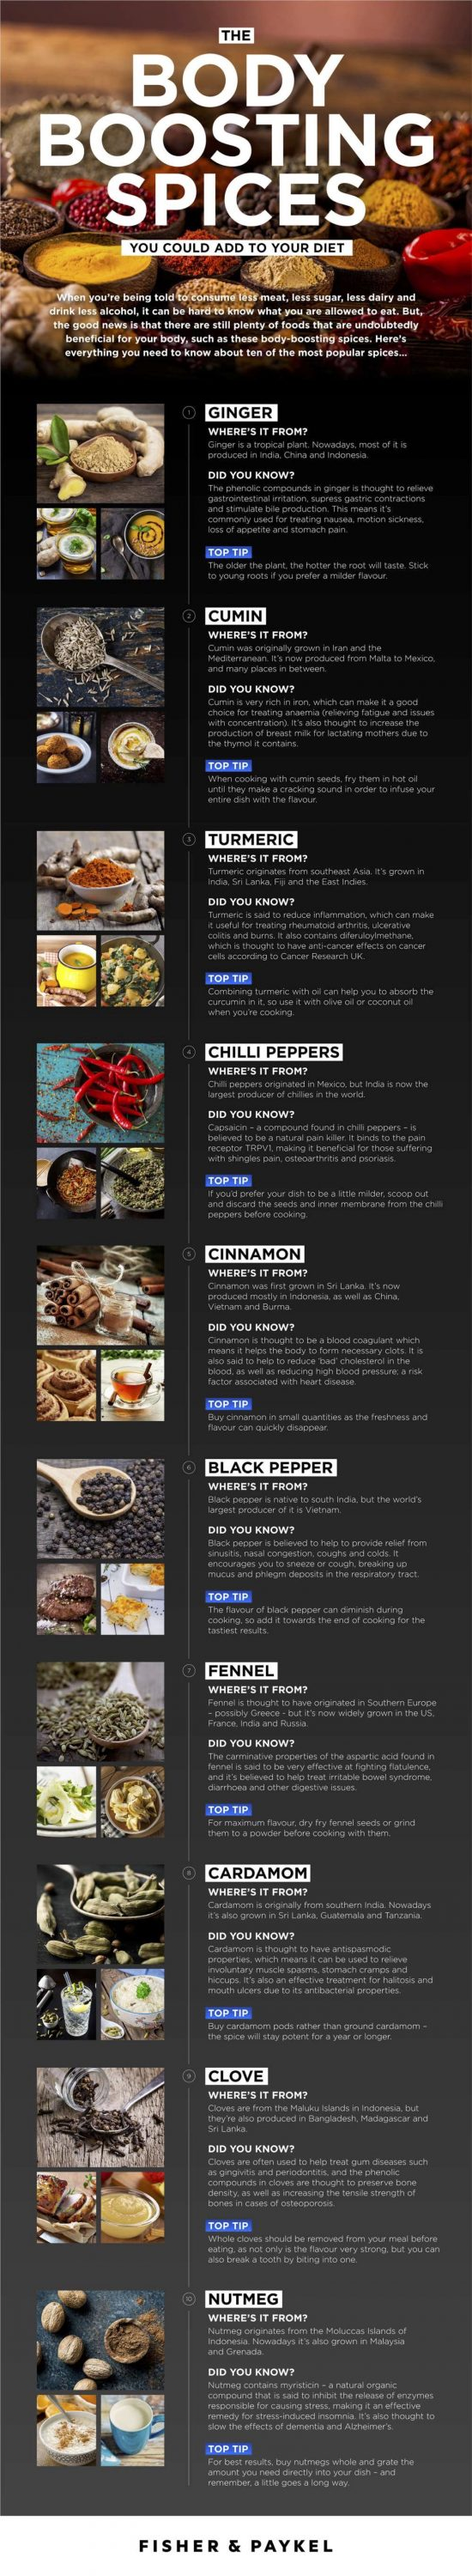 Fisher-Paykel-Body-Boosting-Spices-Infographic-550x3000 The Body Boosting Spices you could add to your Diet